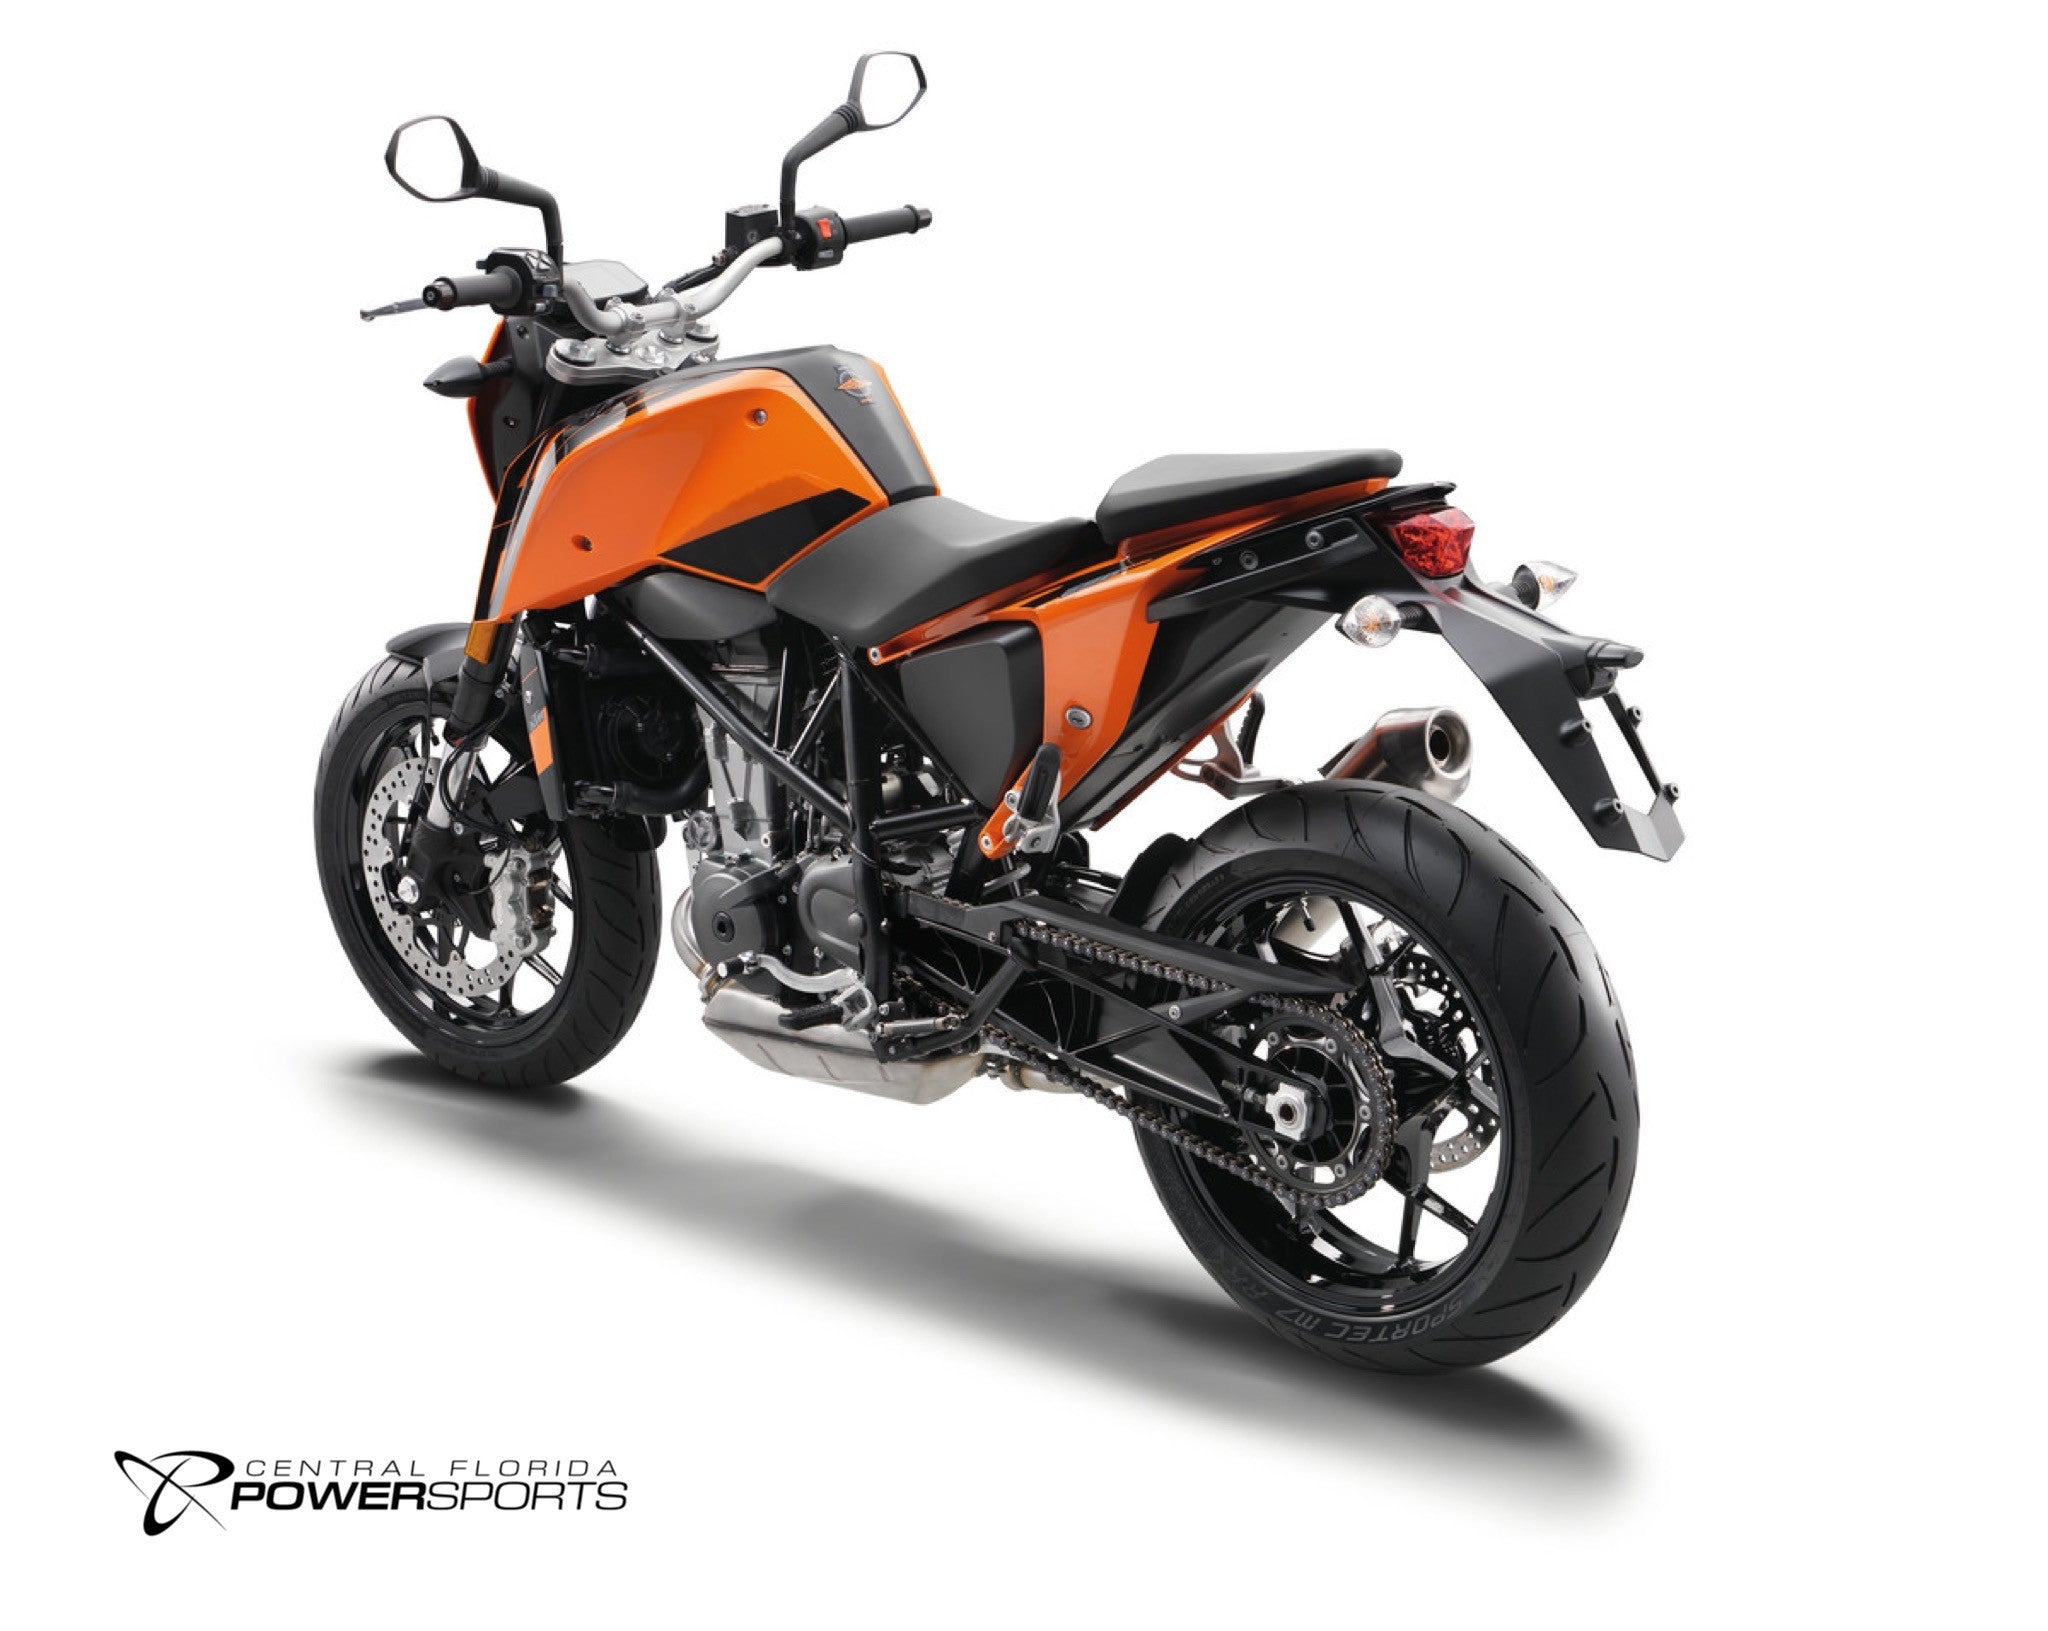 new 2017 ktm 390 duke abs standard motorcycle for sale - central